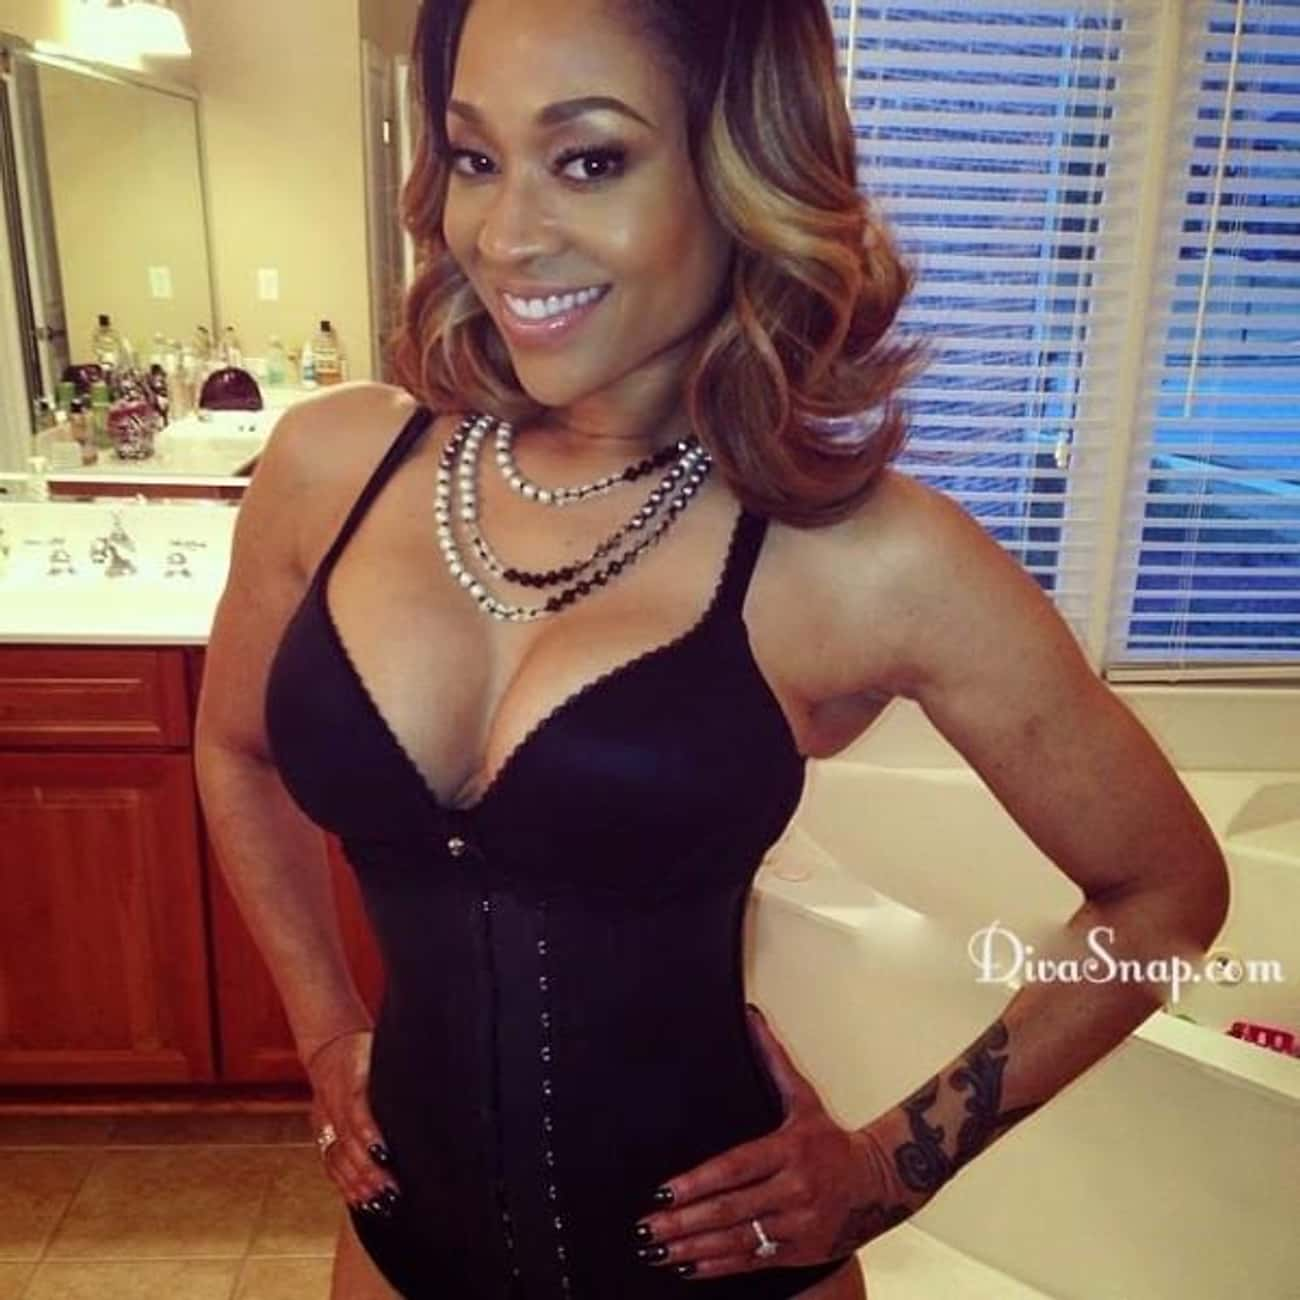 Mimi Faust is listed (or ranked) 3 on the list 37 Celebrities Caught With Leaked Tapes